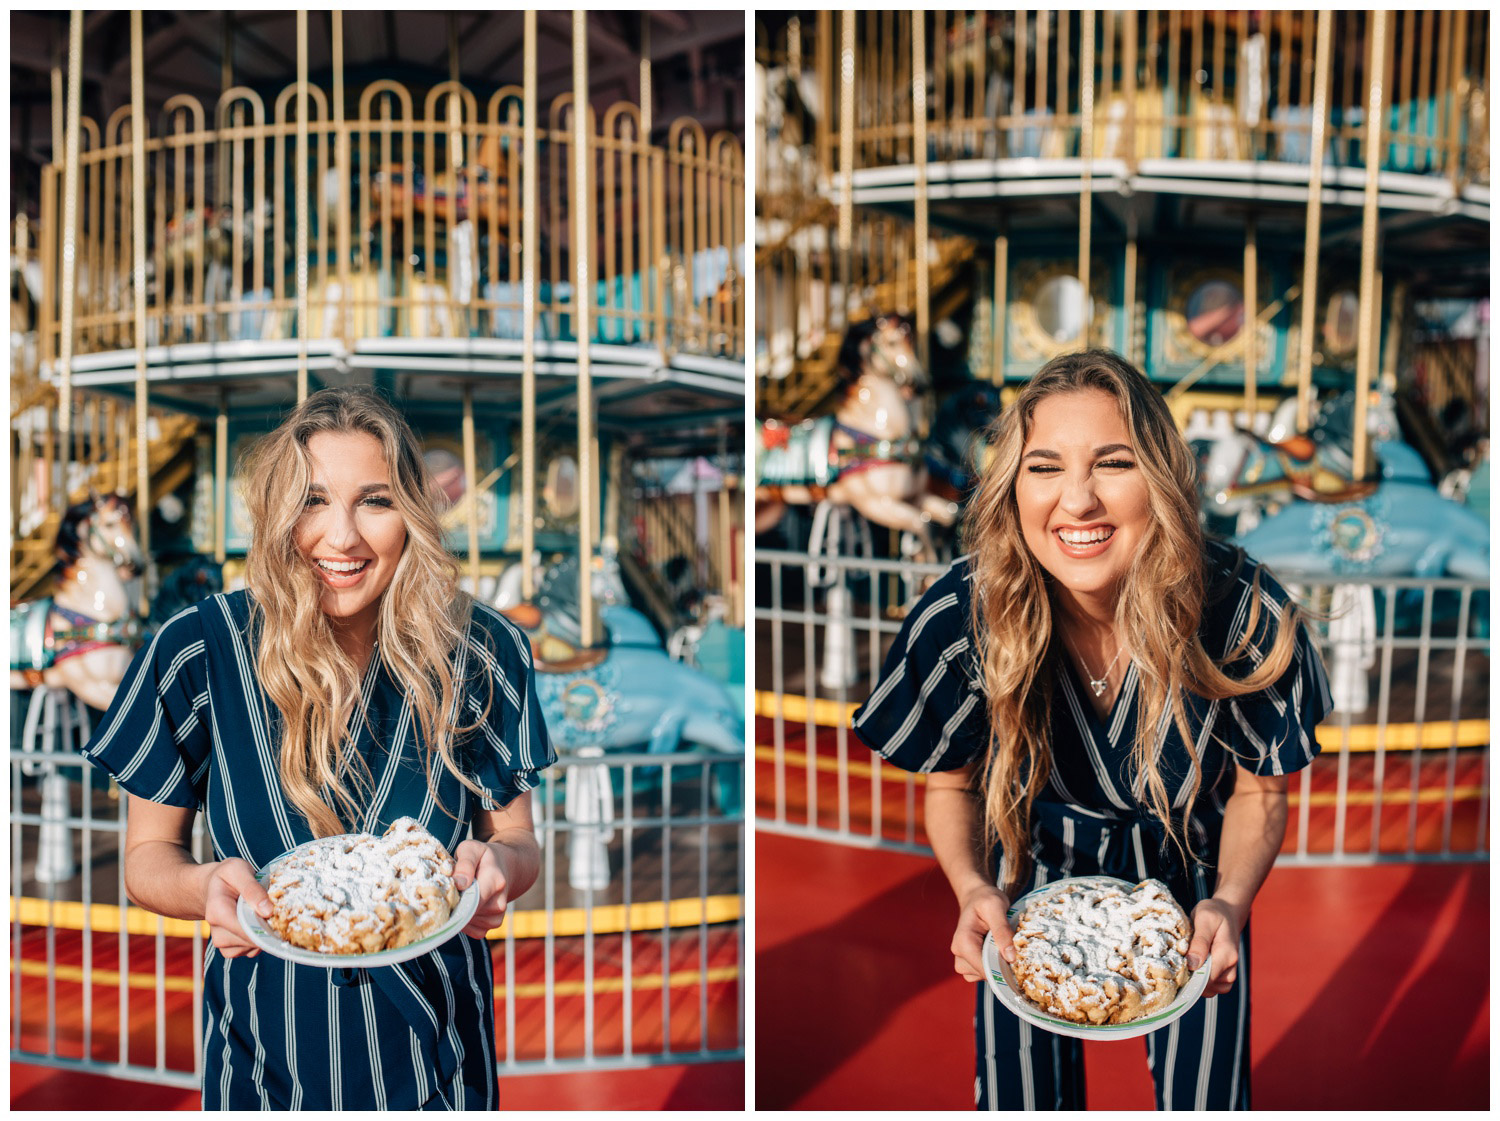 senior girl with funnel cake in front of a carousel